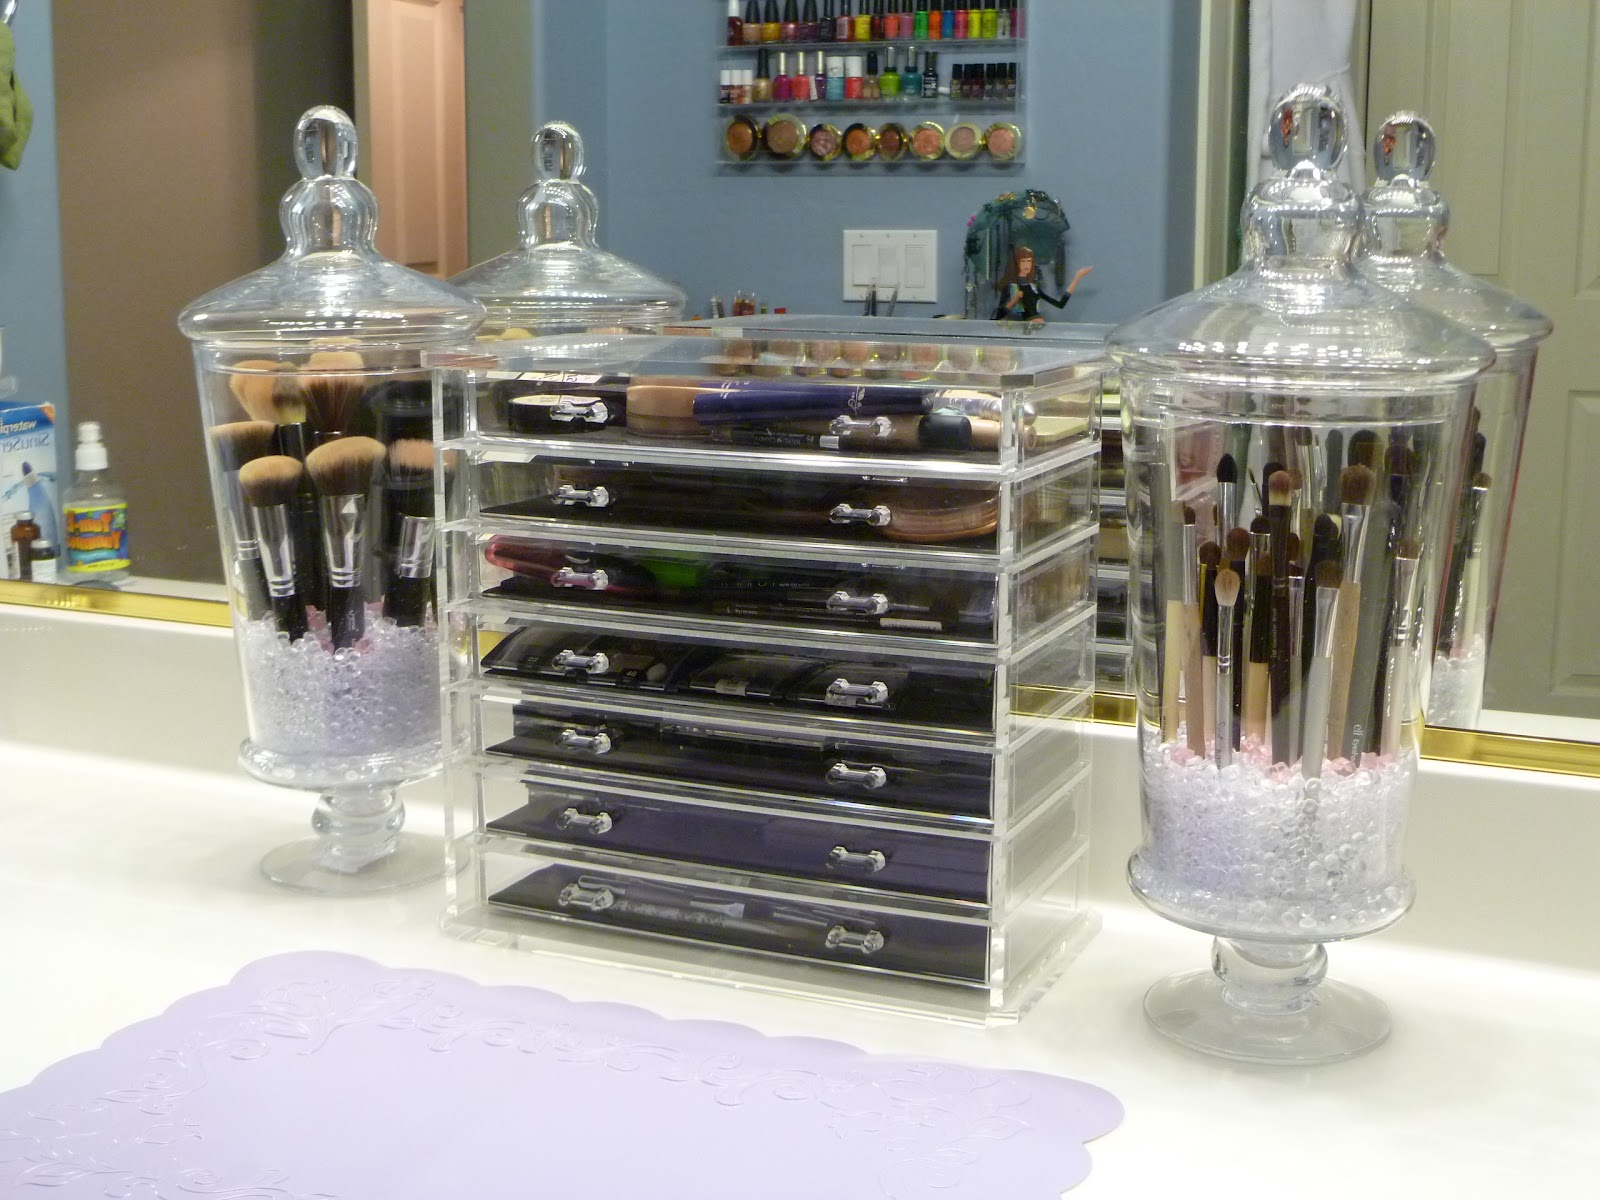 Gorgeous Diy Makeup Organizing Idea